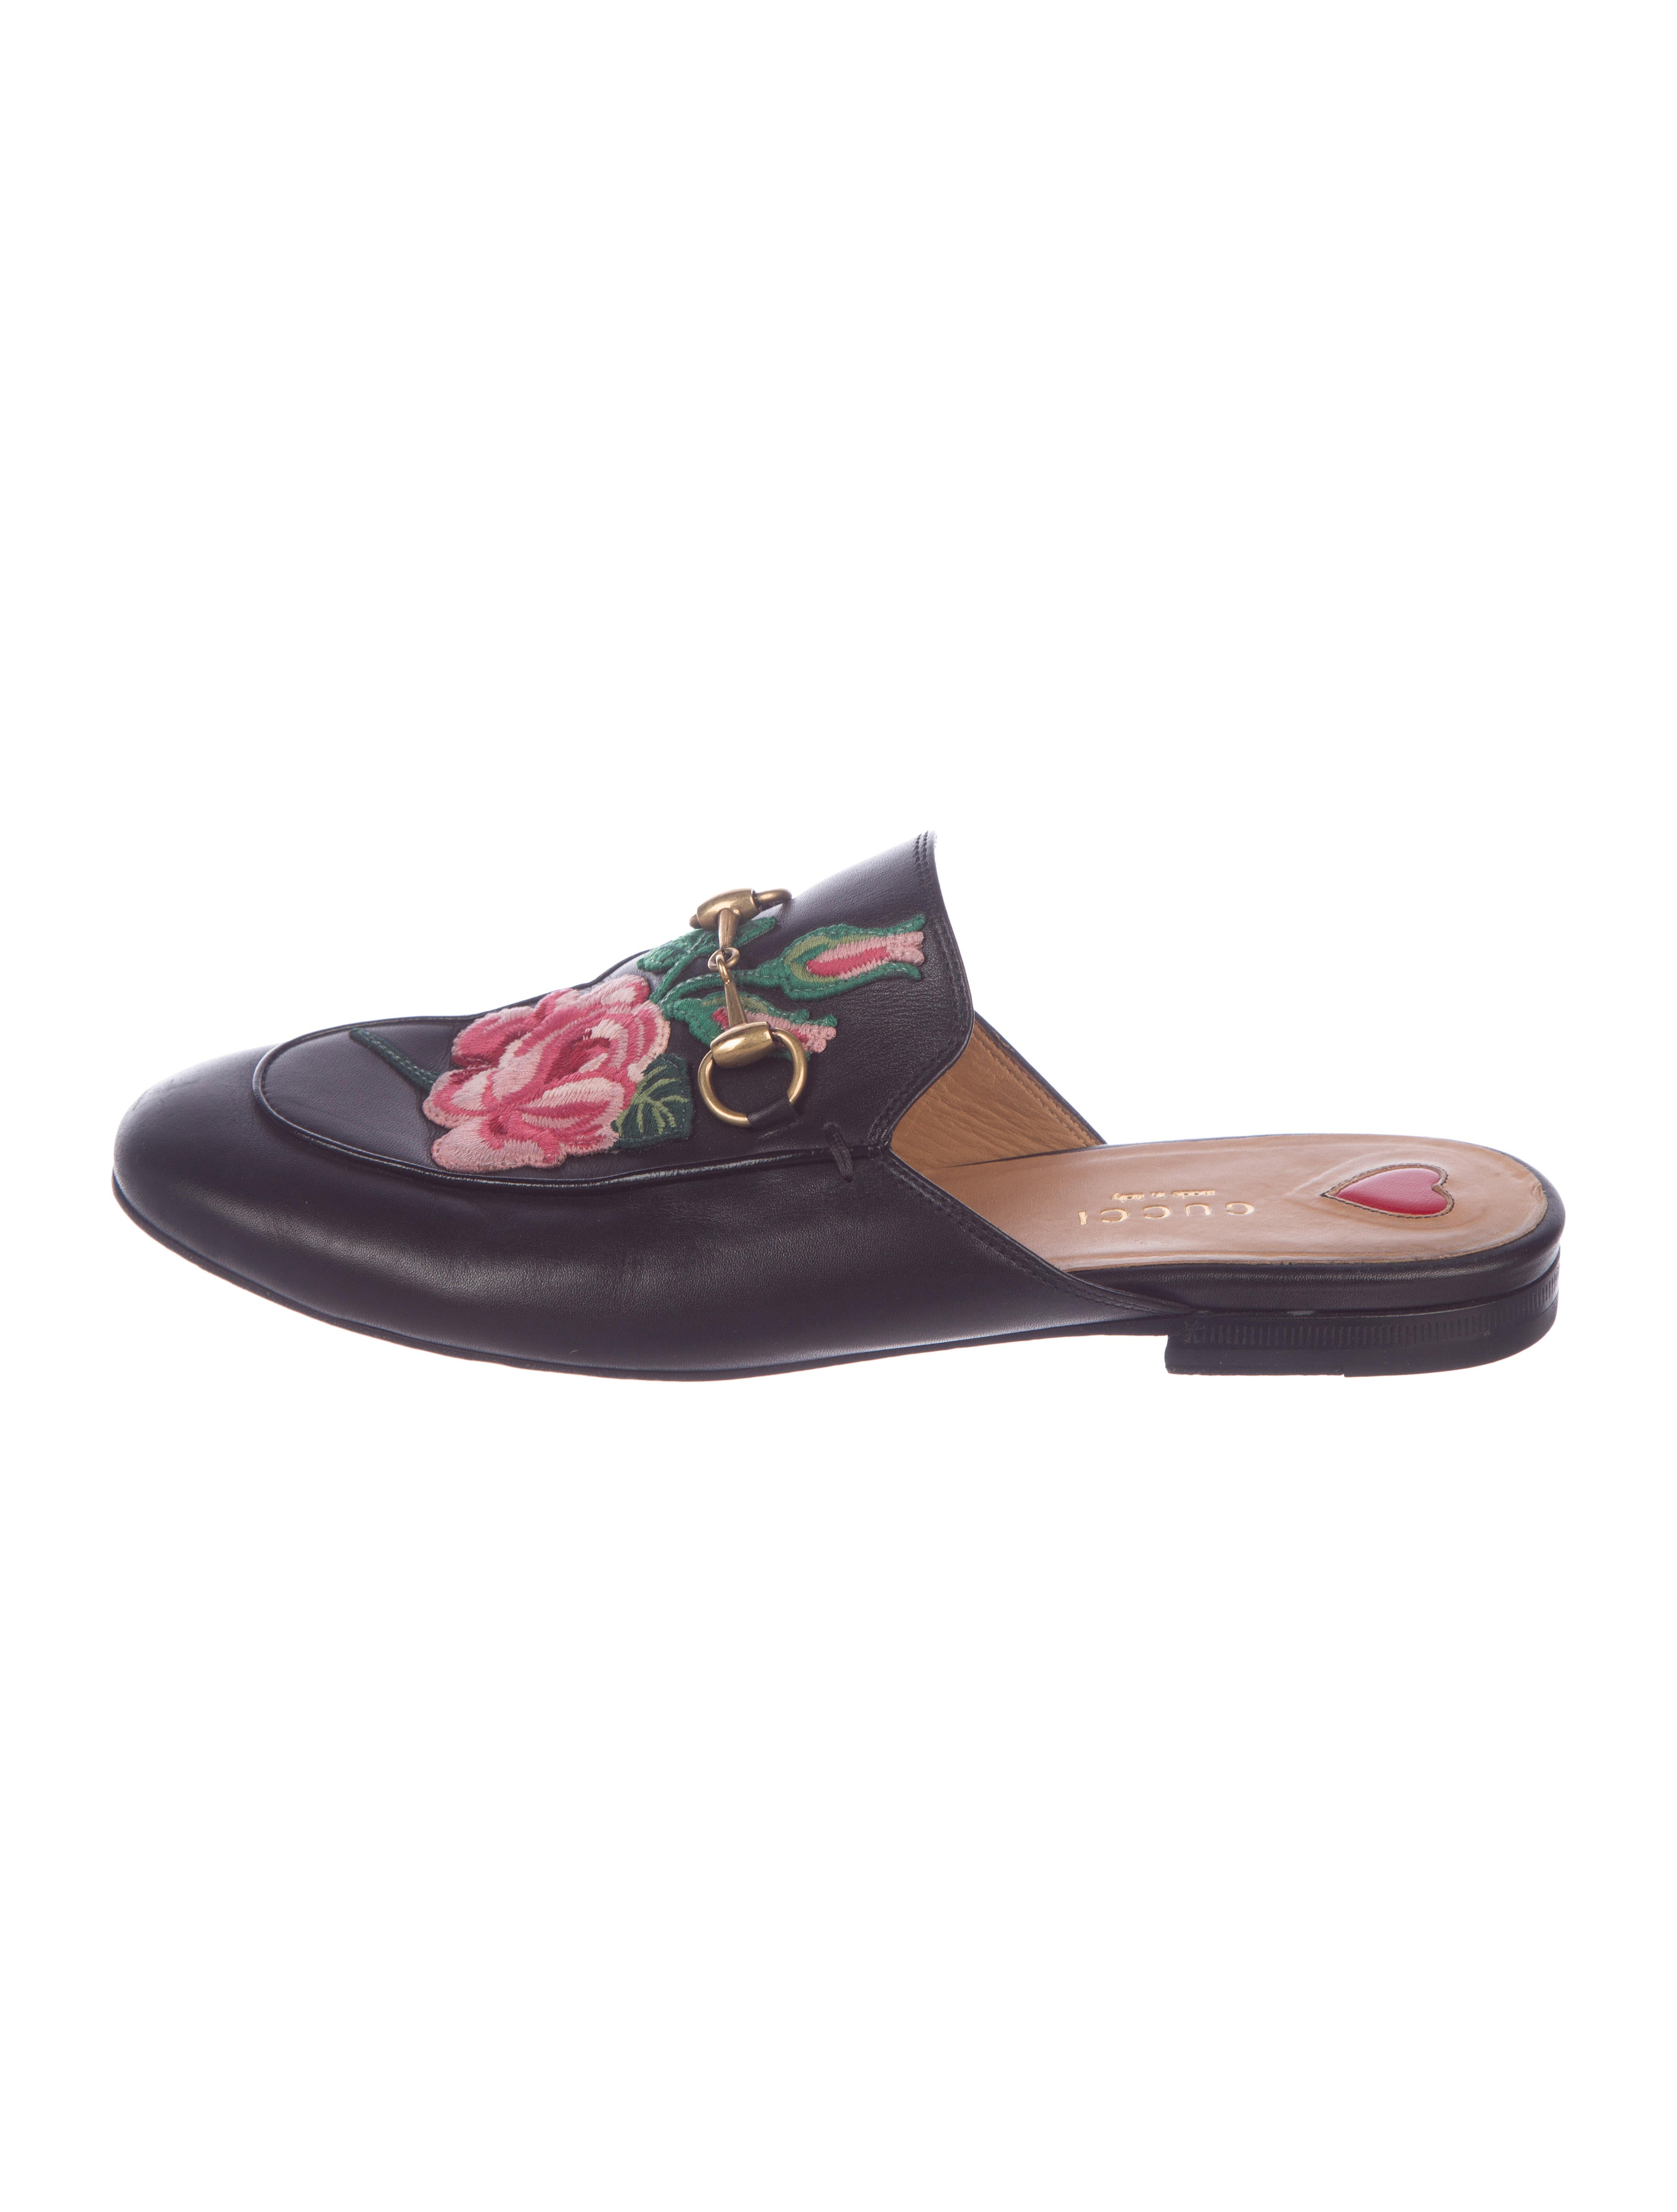 abc948342 Gucci Princetown Horsebit Mules - Shoes - GUC305274 | The RealReal